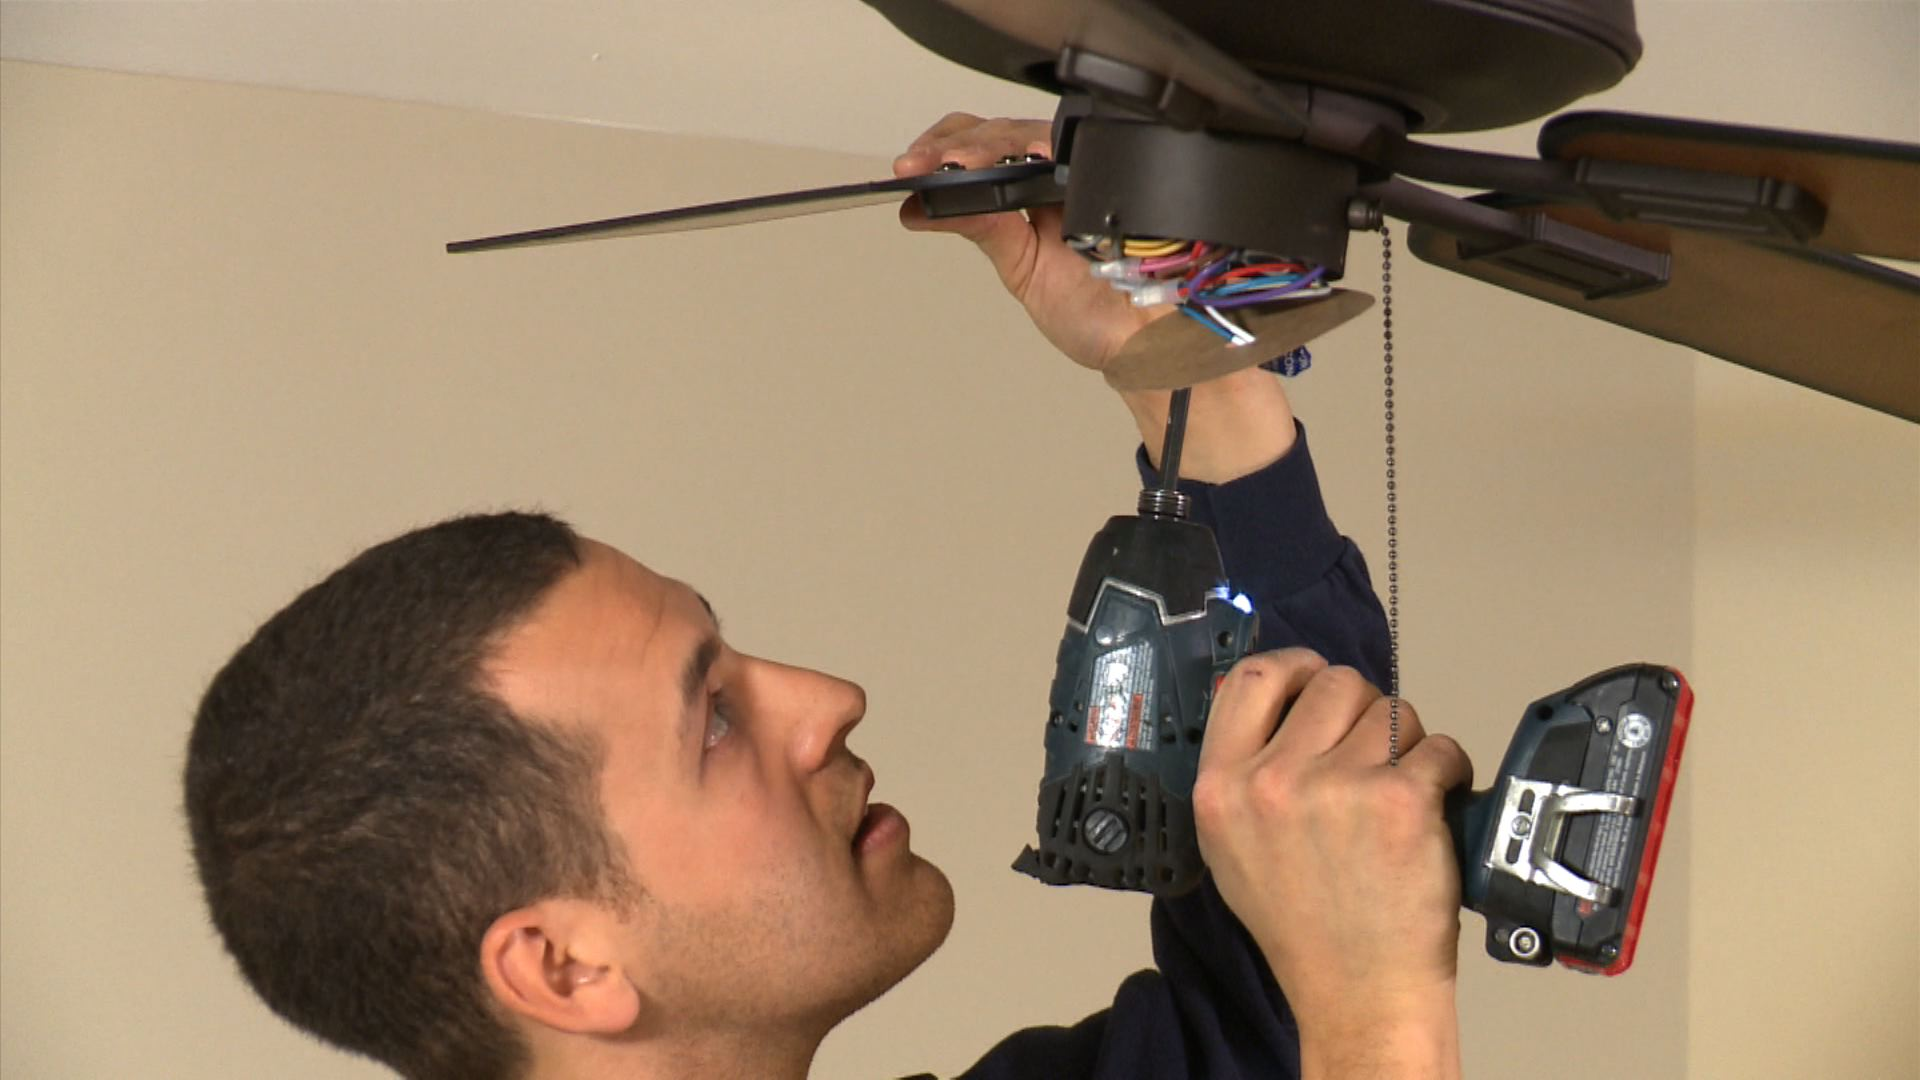 Ceiling fan installation sp models triump 7 easy steps to install a ceiling fan aloadofball Image collections